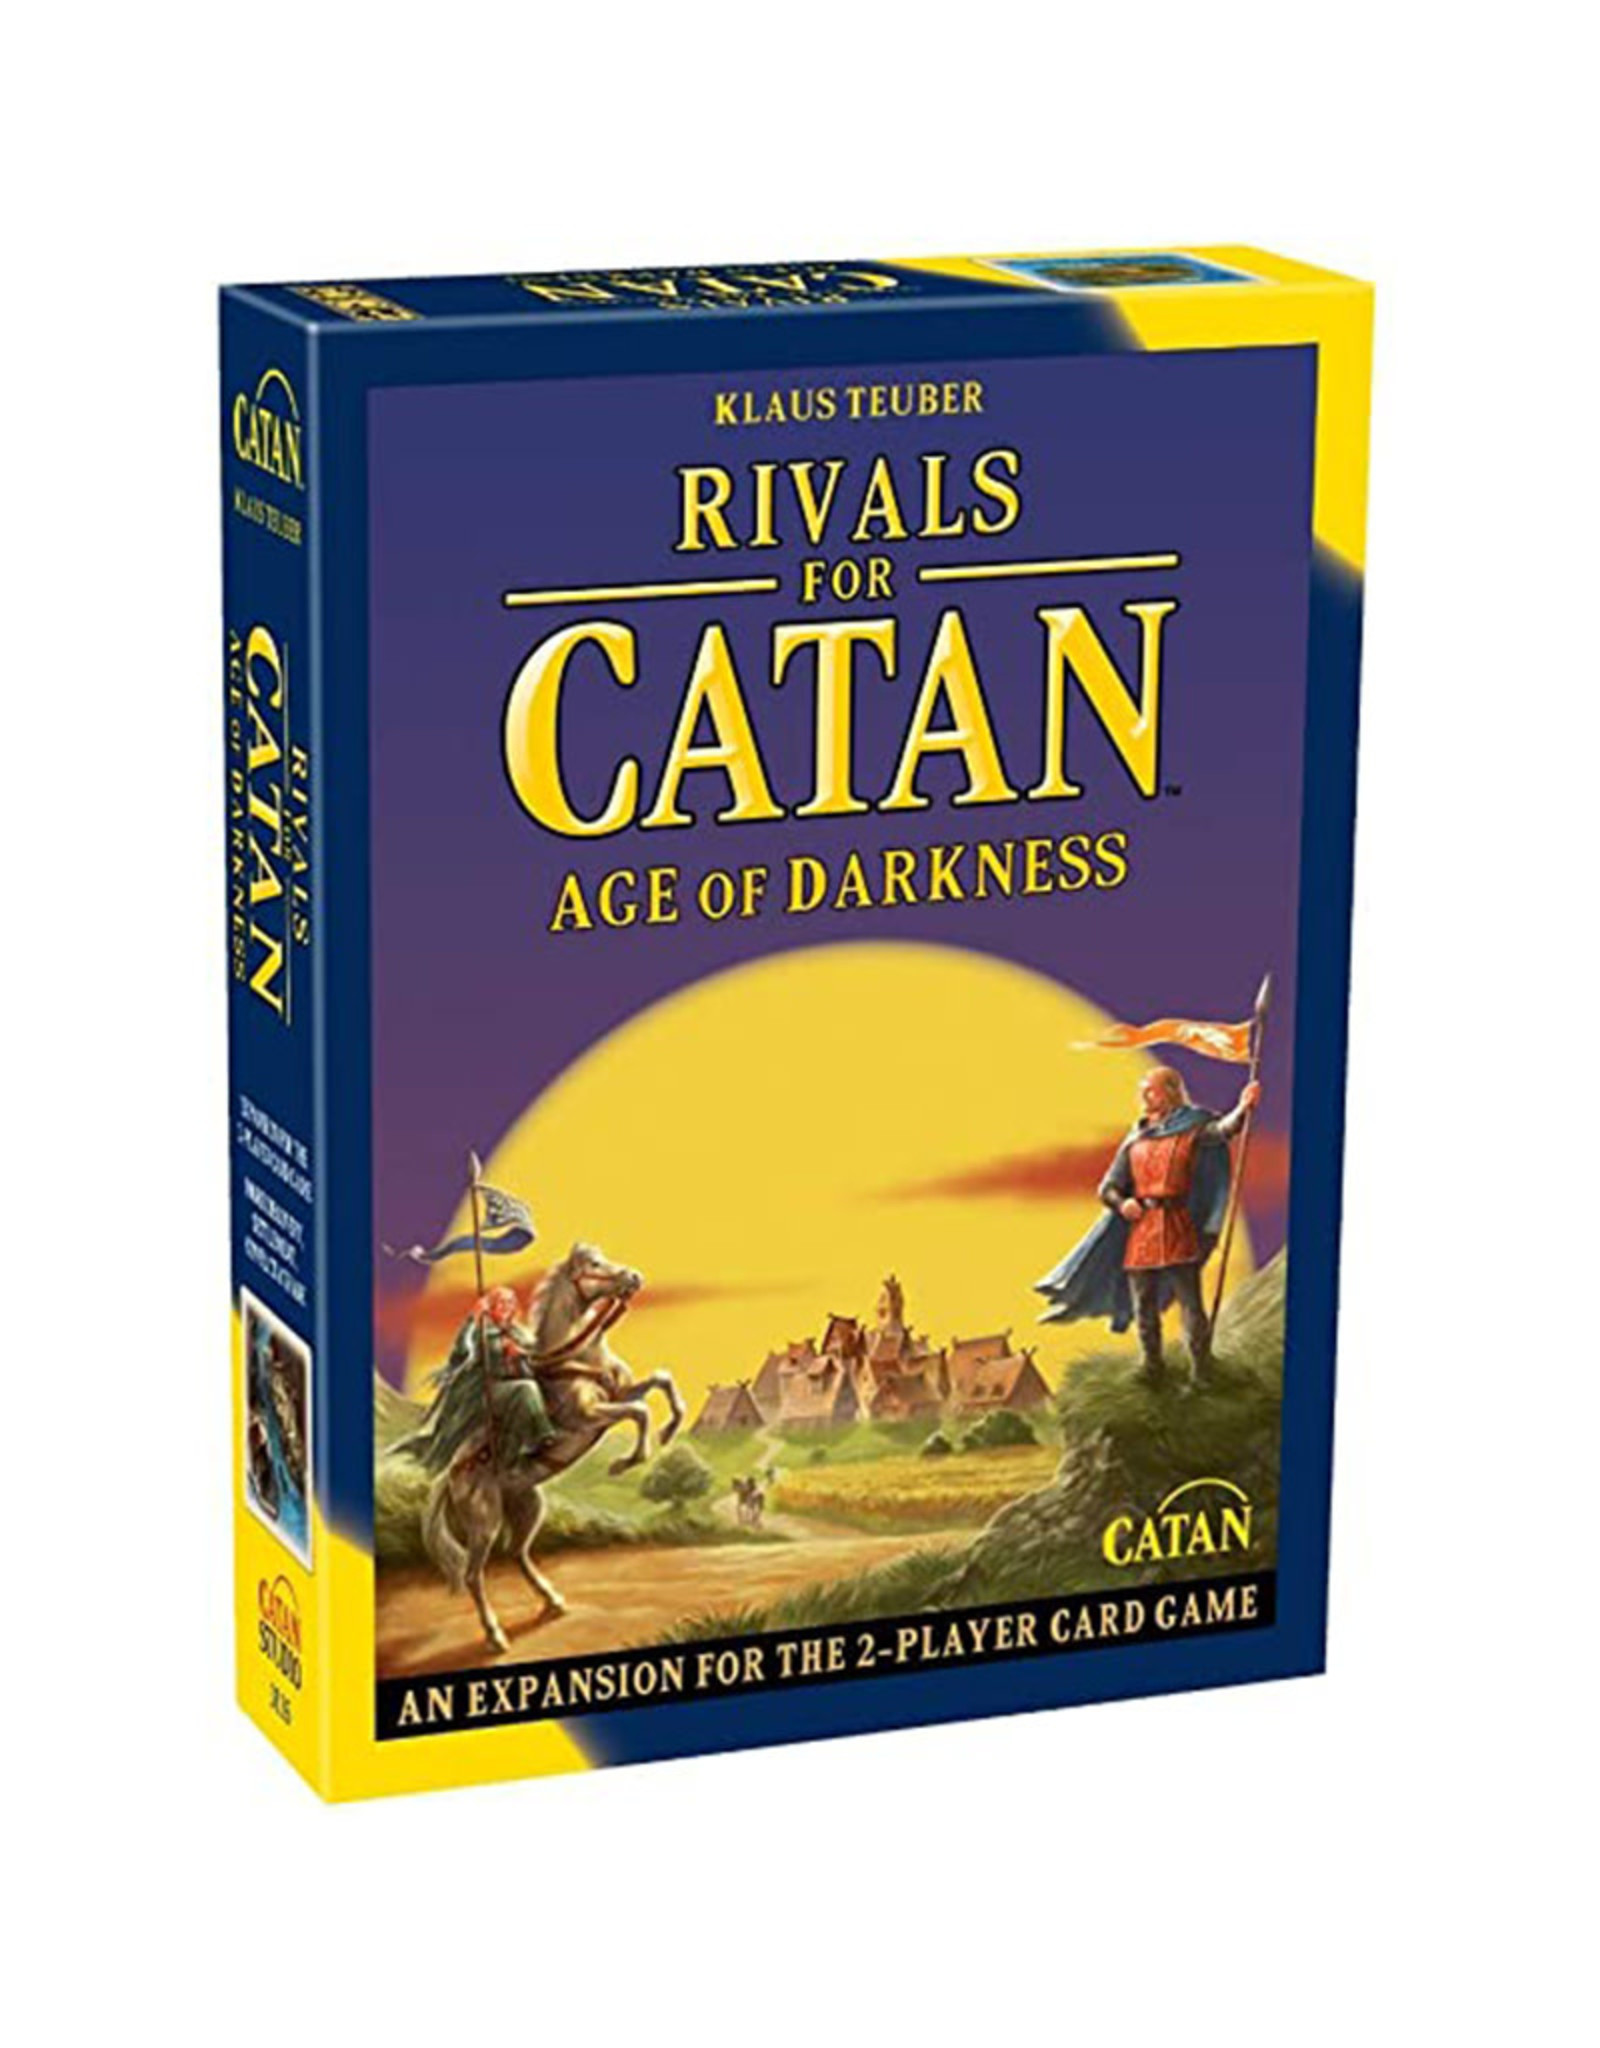 Catan: Rivals for Catan Age of Darkness Expansion